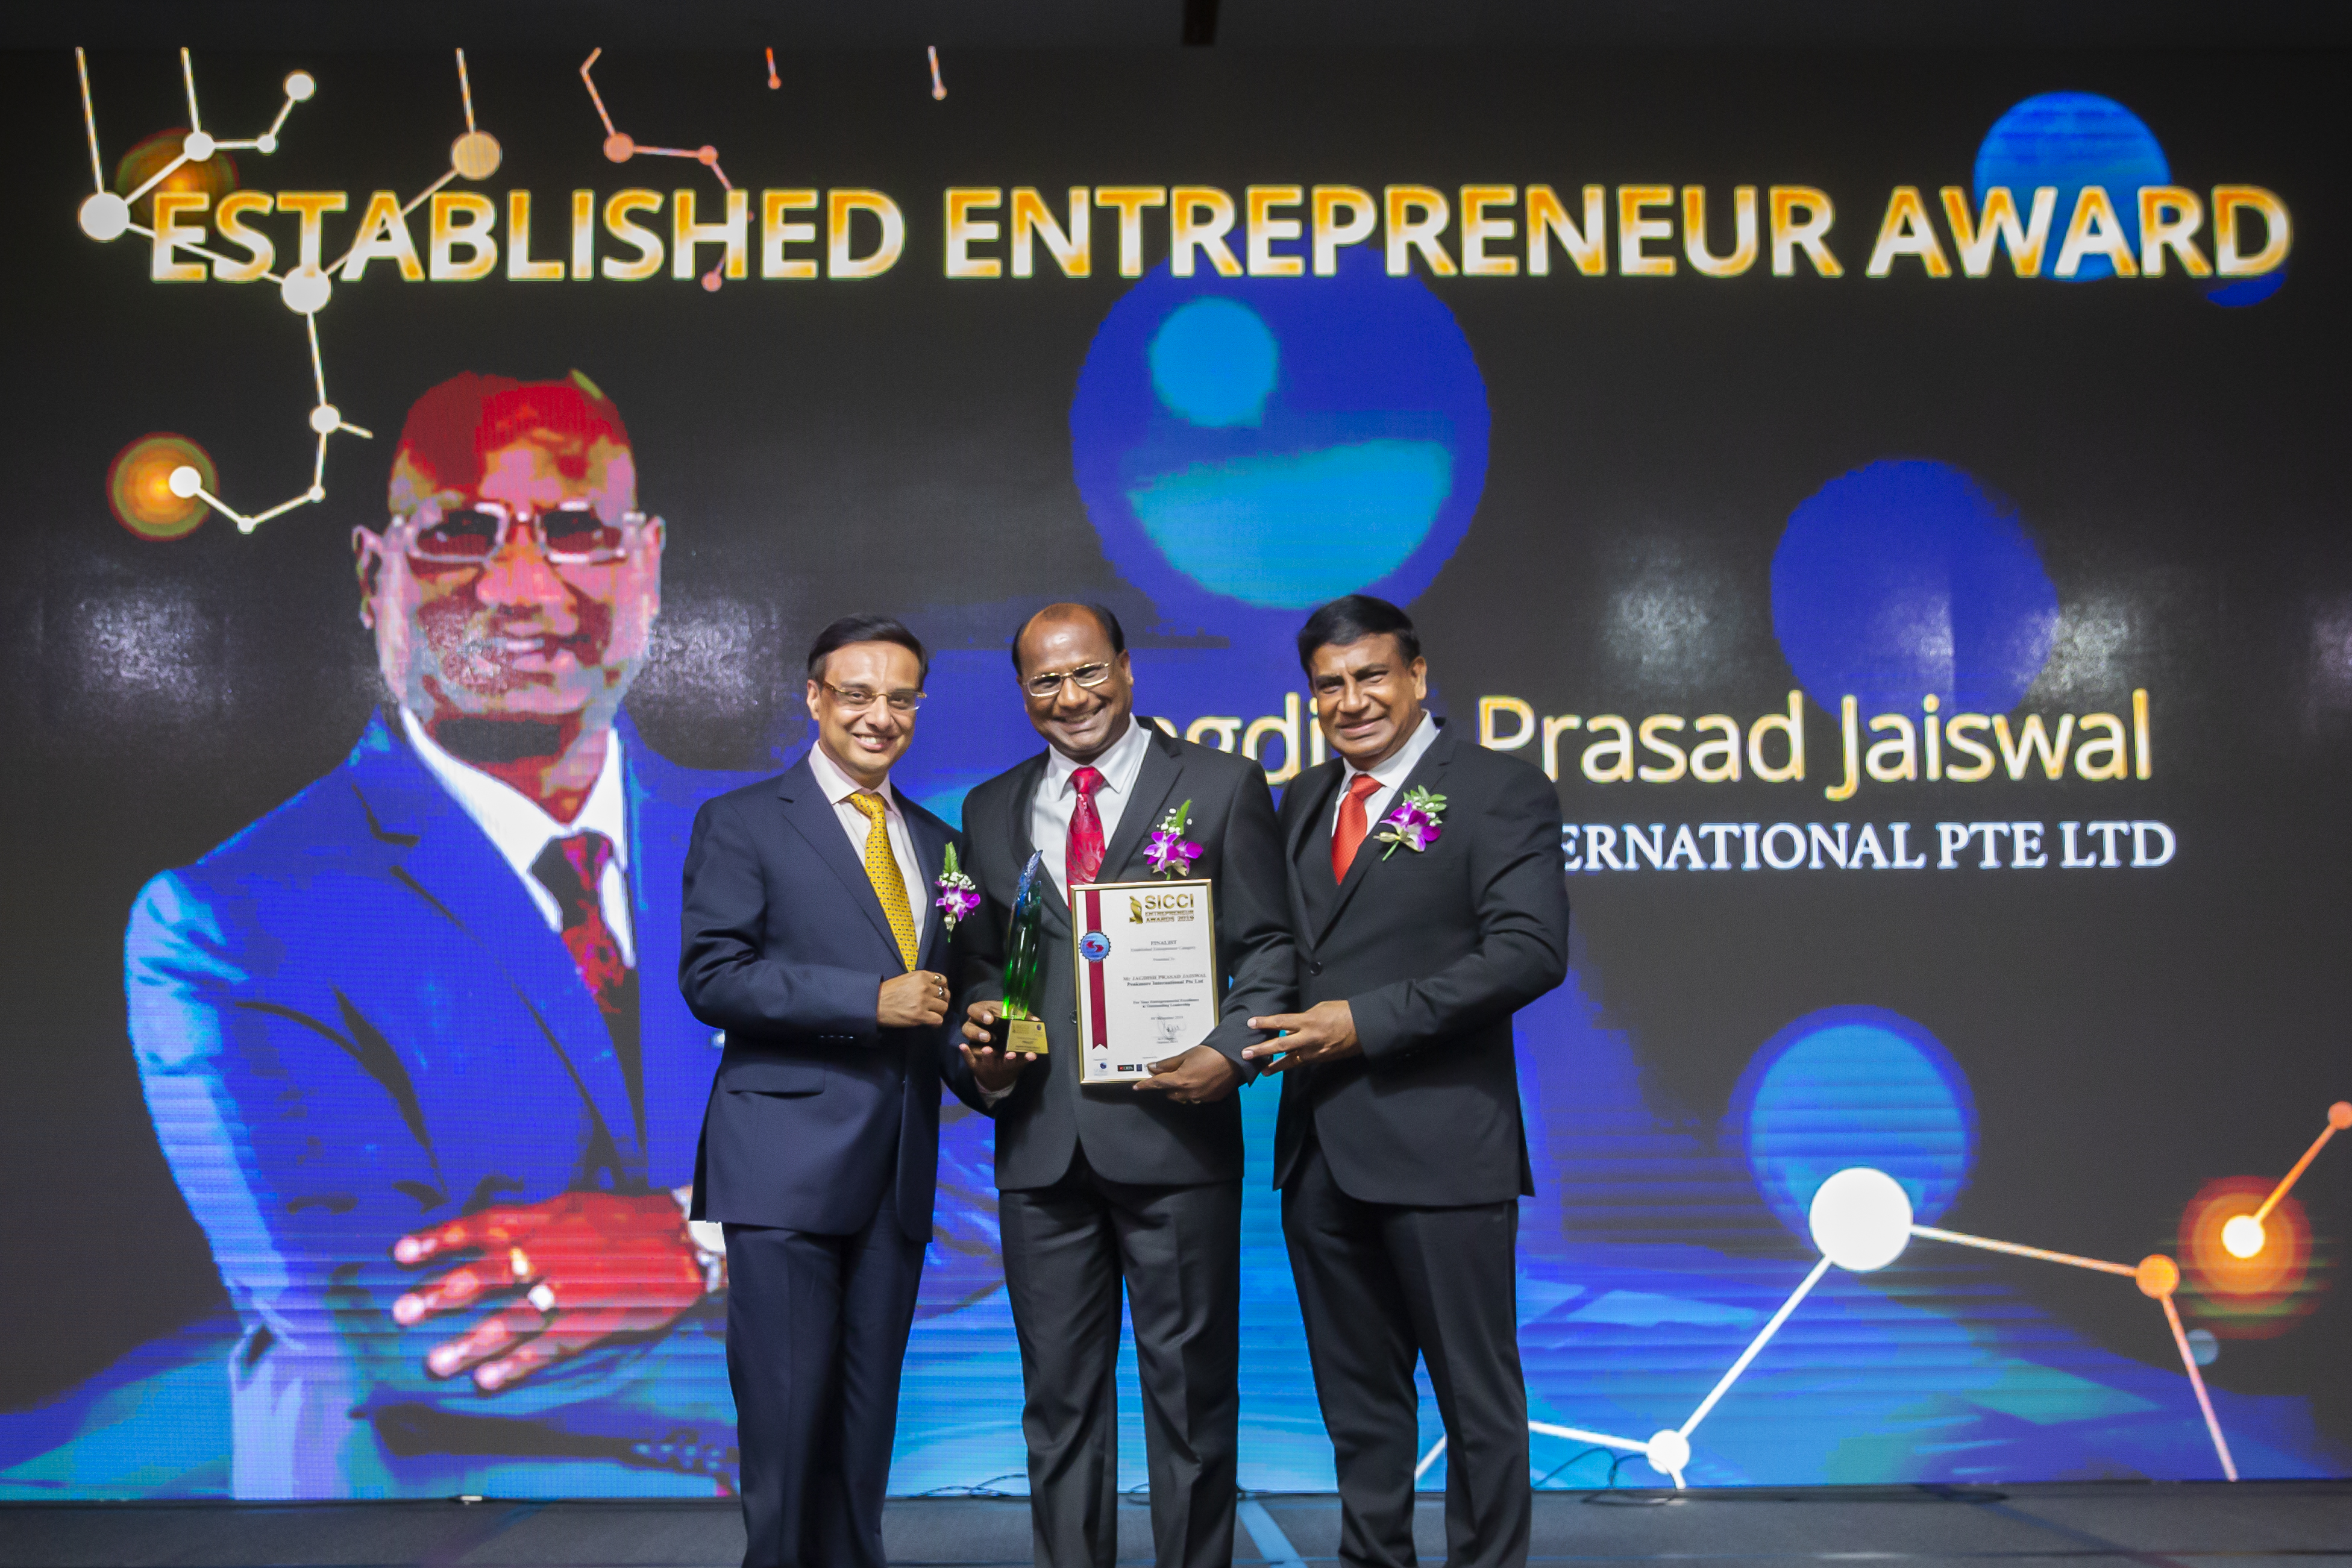 Established Entreprenuer Award winner, Chairman and Managing Director of Peakmore International Private Limited at the SICCI's 95th Anniversary gala event. From L to R: Mr Prasoon Mukherjee (Vice Chairman,SICCI ), Mr Jagdish Prasad Jaiswal (Winner of the Established Entrepreneur Award), Dr T. Chandroo (Chairman, SICCI). Photo Courtesy: SICCI